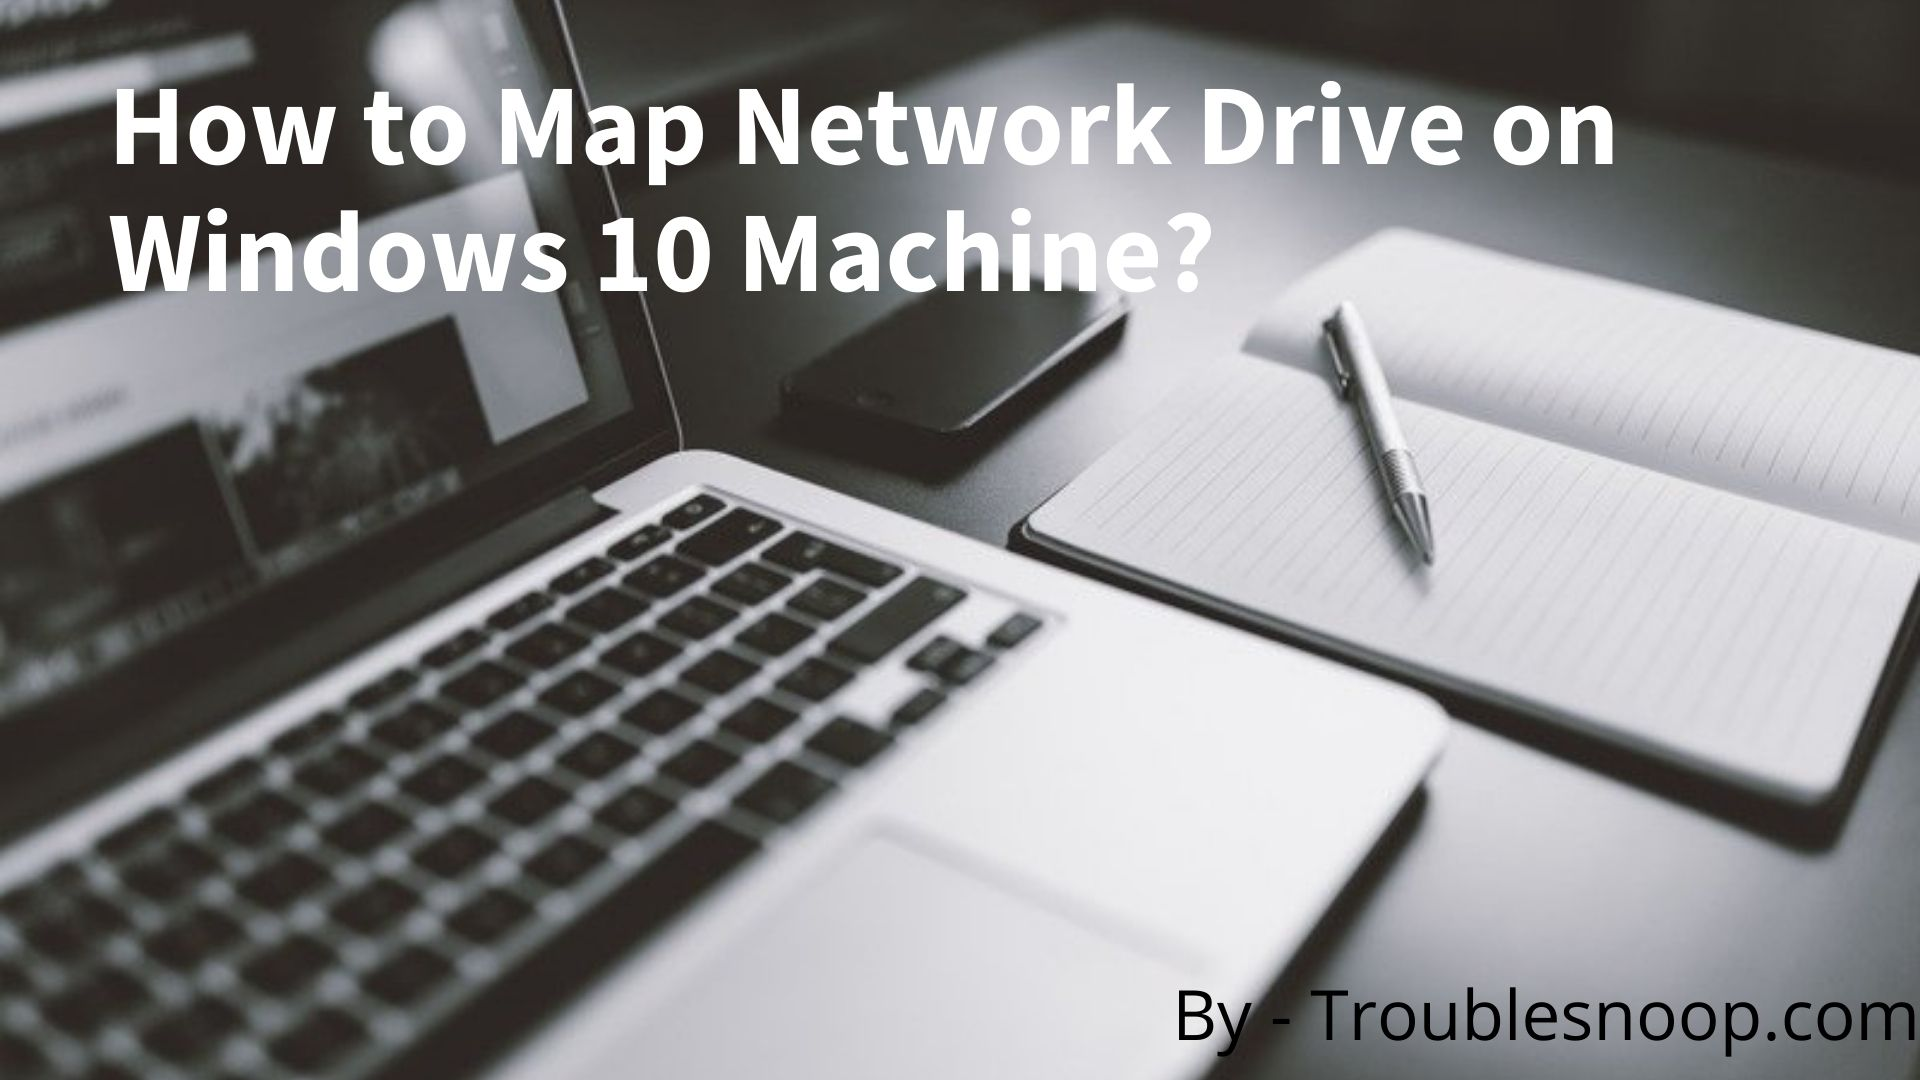 How to Map Network Drive on Windows 10 Machine